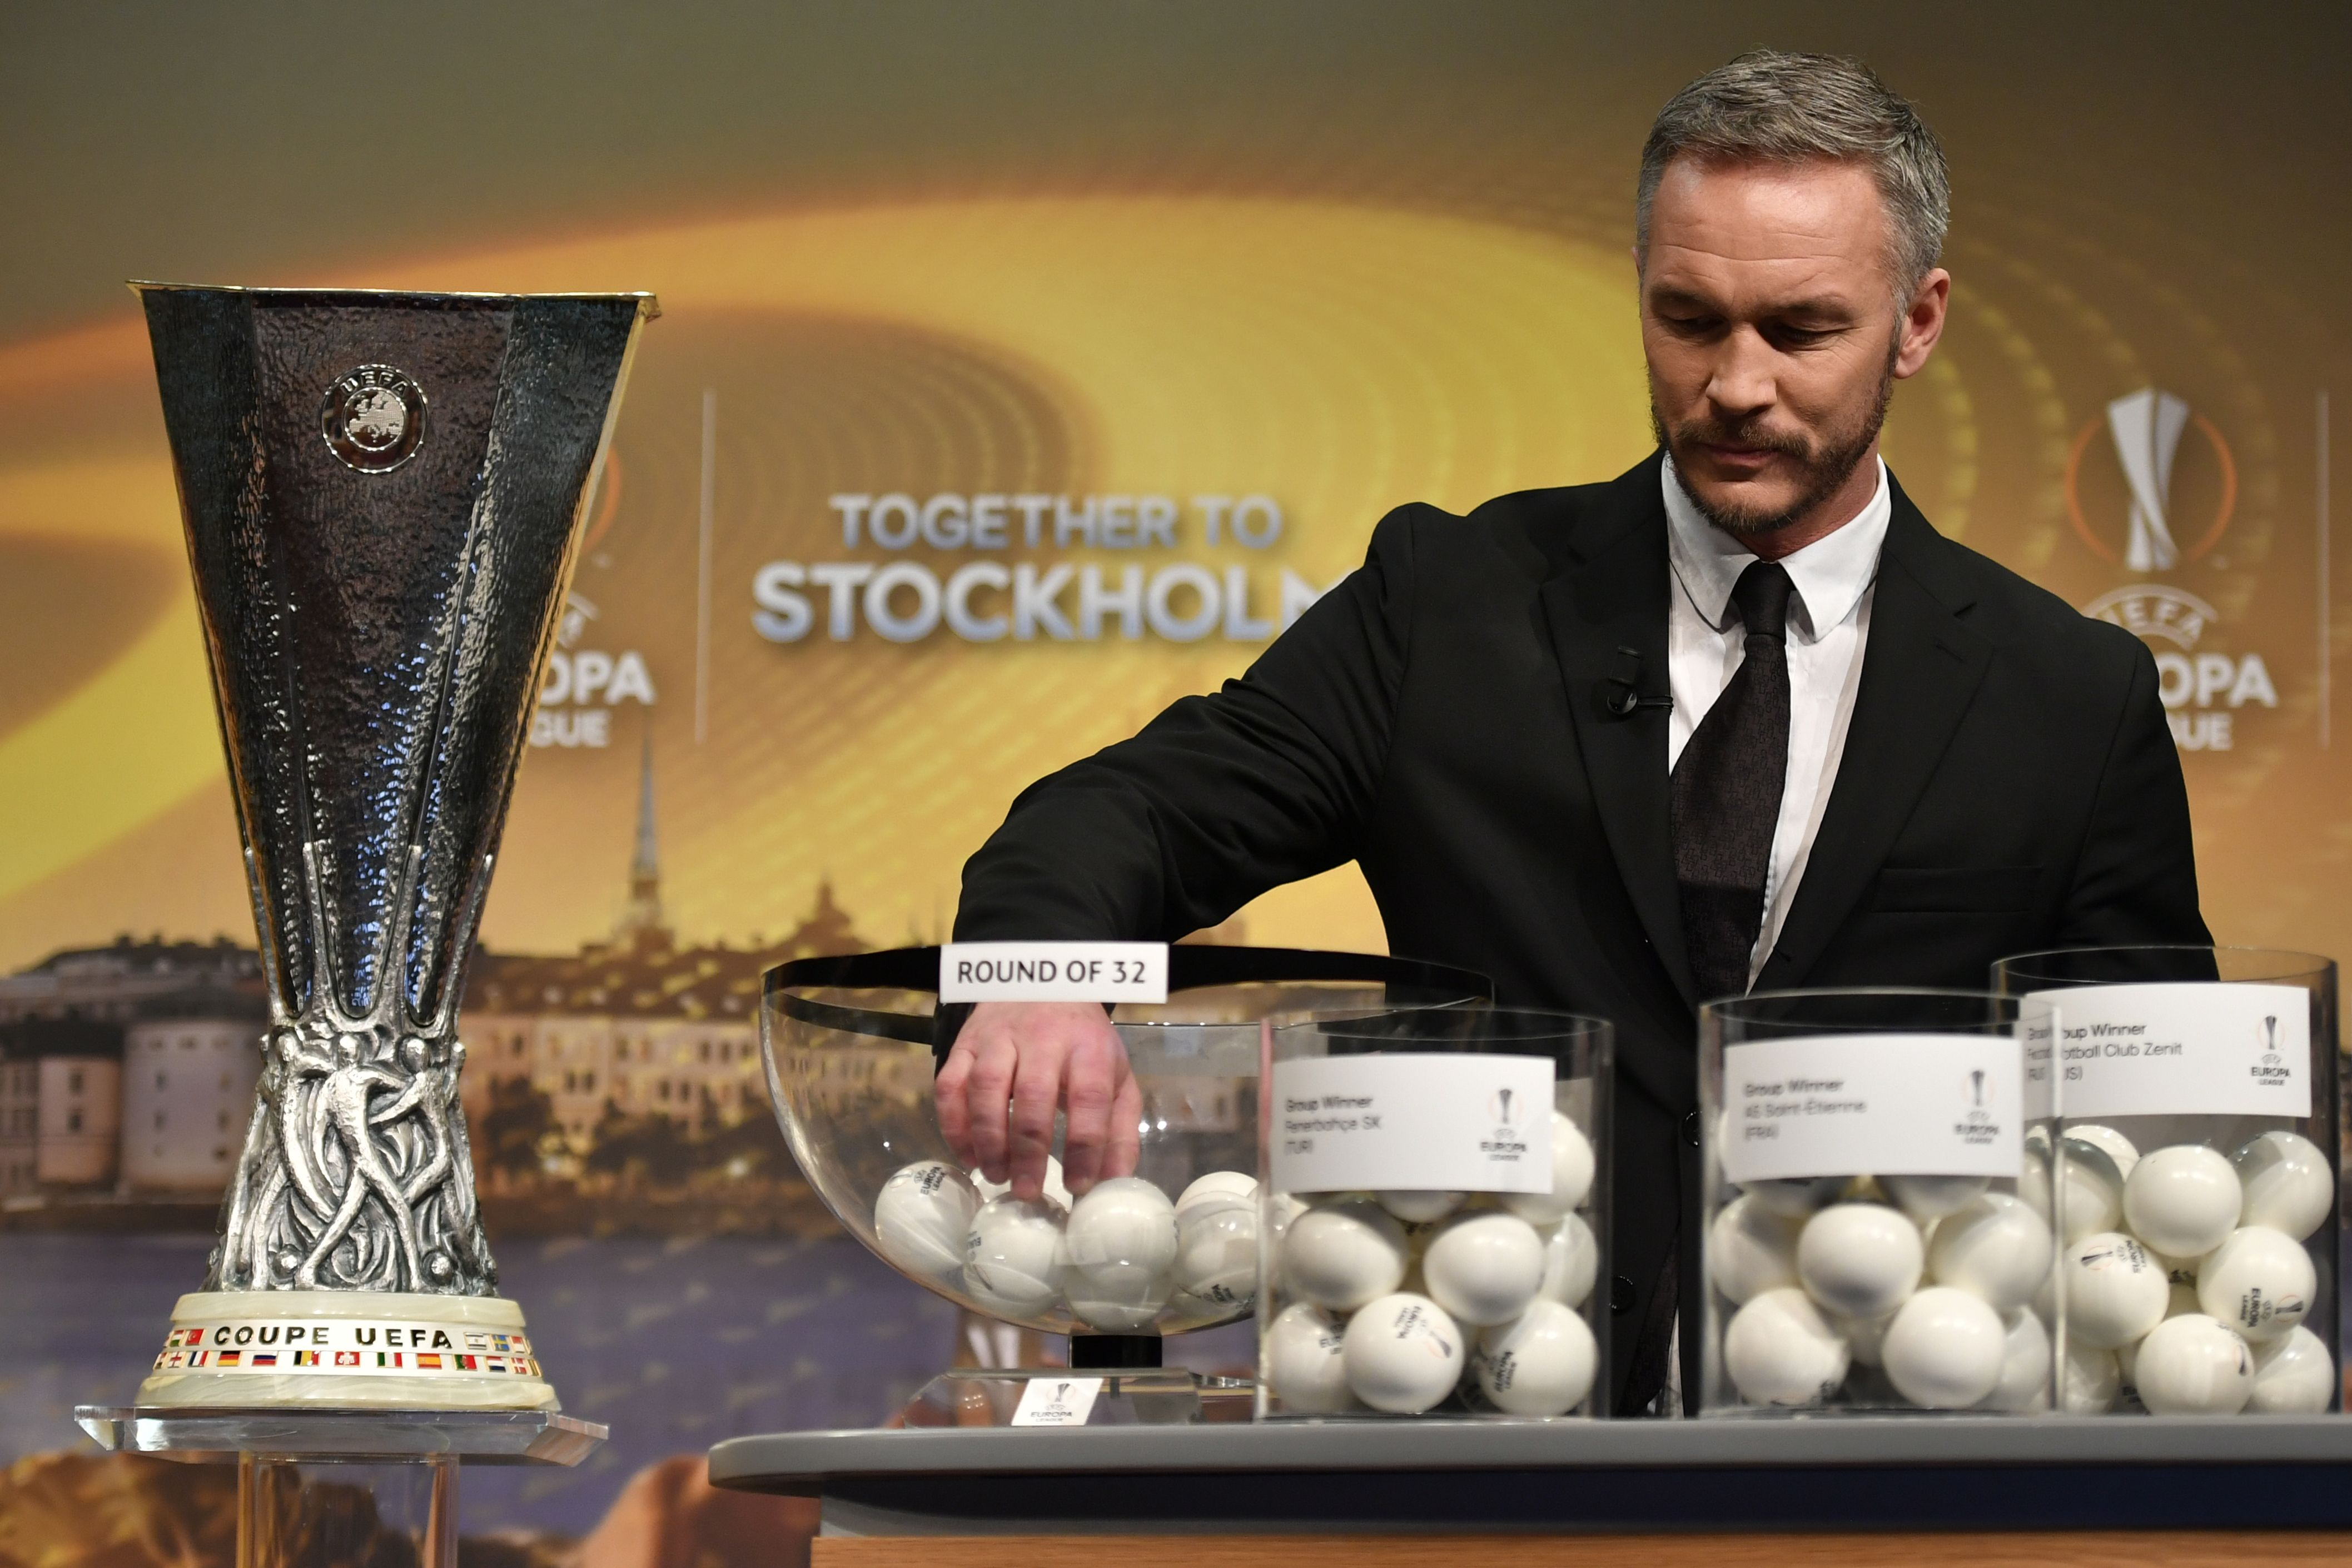 Sweden's former defender and 2017 Europa League final ambassador Patrik Andersson holds the draw for the round of 32 of the UEFA Europa League football tournament at the UEFA headquarters in Nyon on December 12, 2016. / AFP / Fabrice COFFRINI        (Photo credit should read FABRICE COFFRINI/AFP/Getty Images)